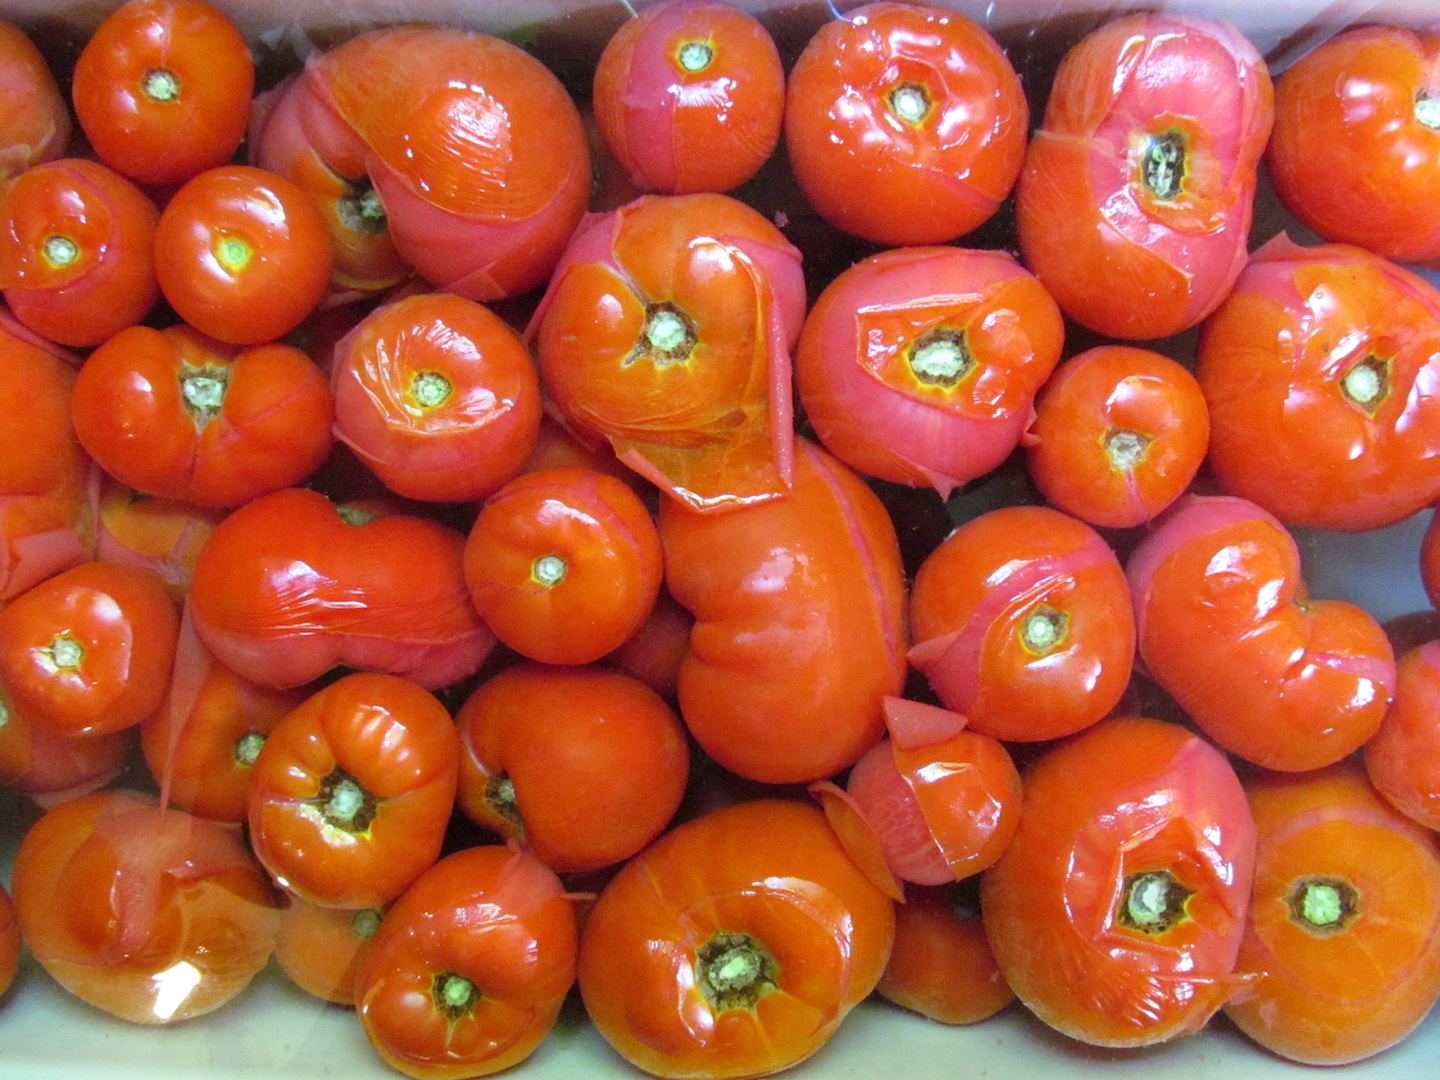 Best Tomatoes for Canning